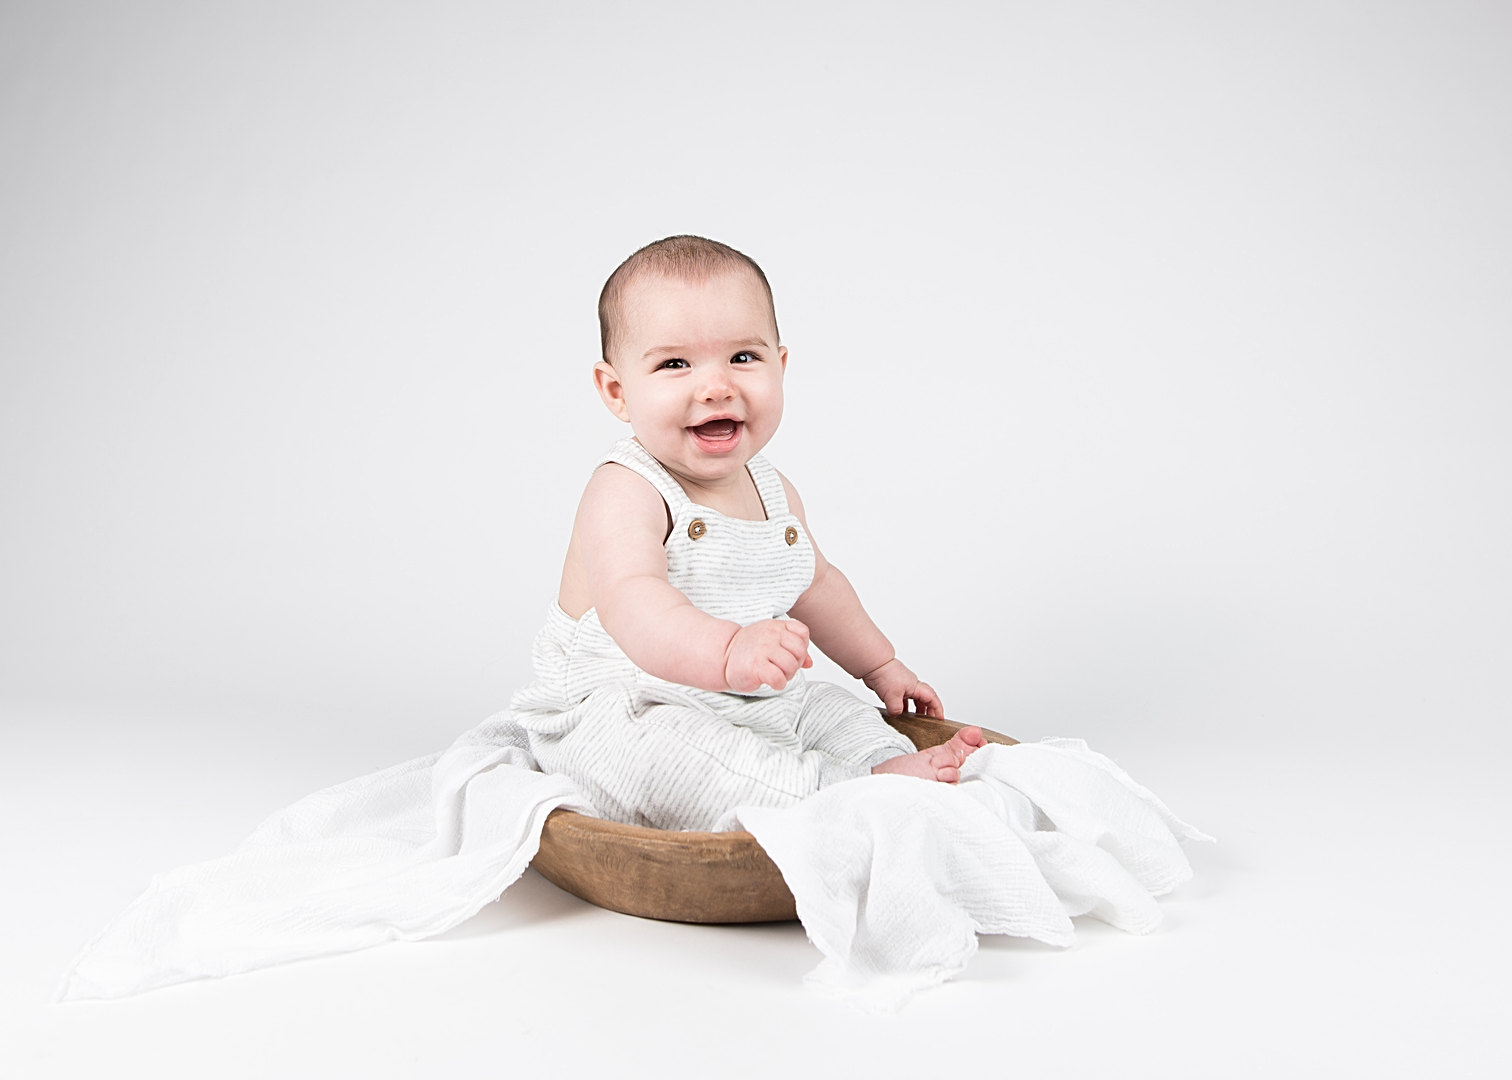 Falmouth baby photographer